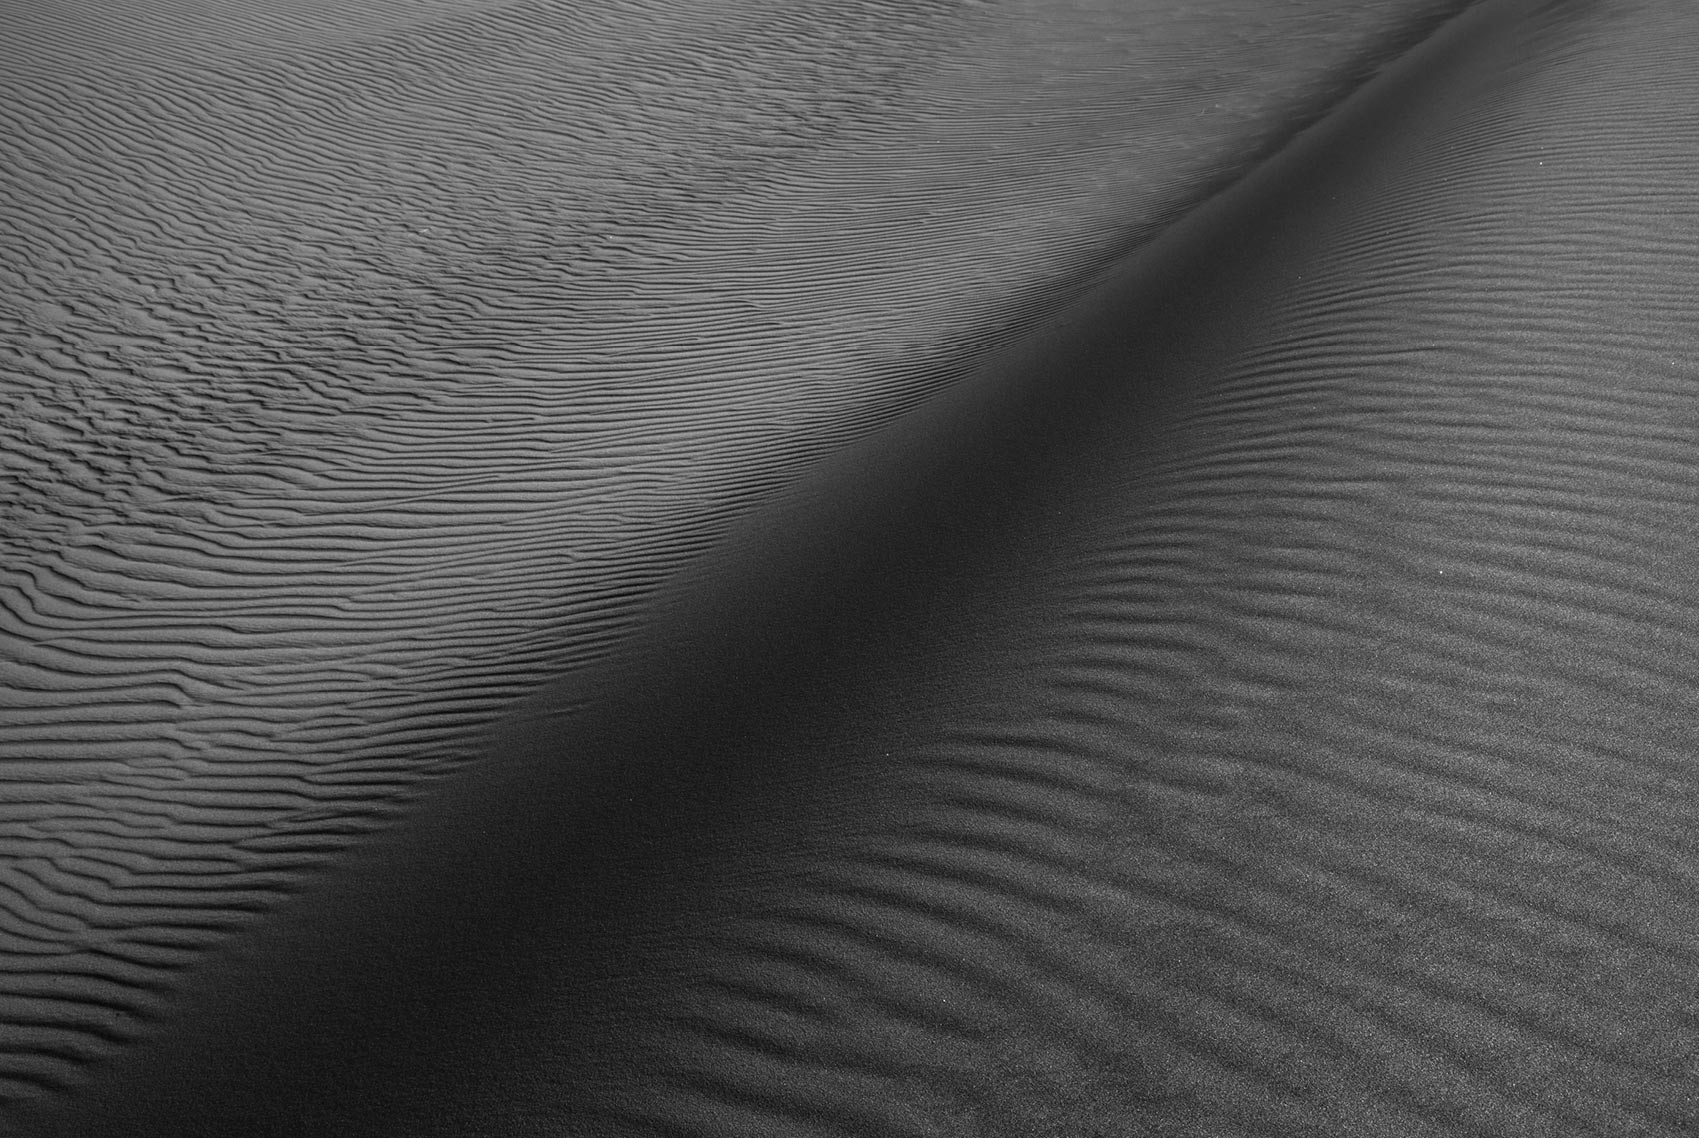 sam_kweskin_great_sand_dunes_colorado_12